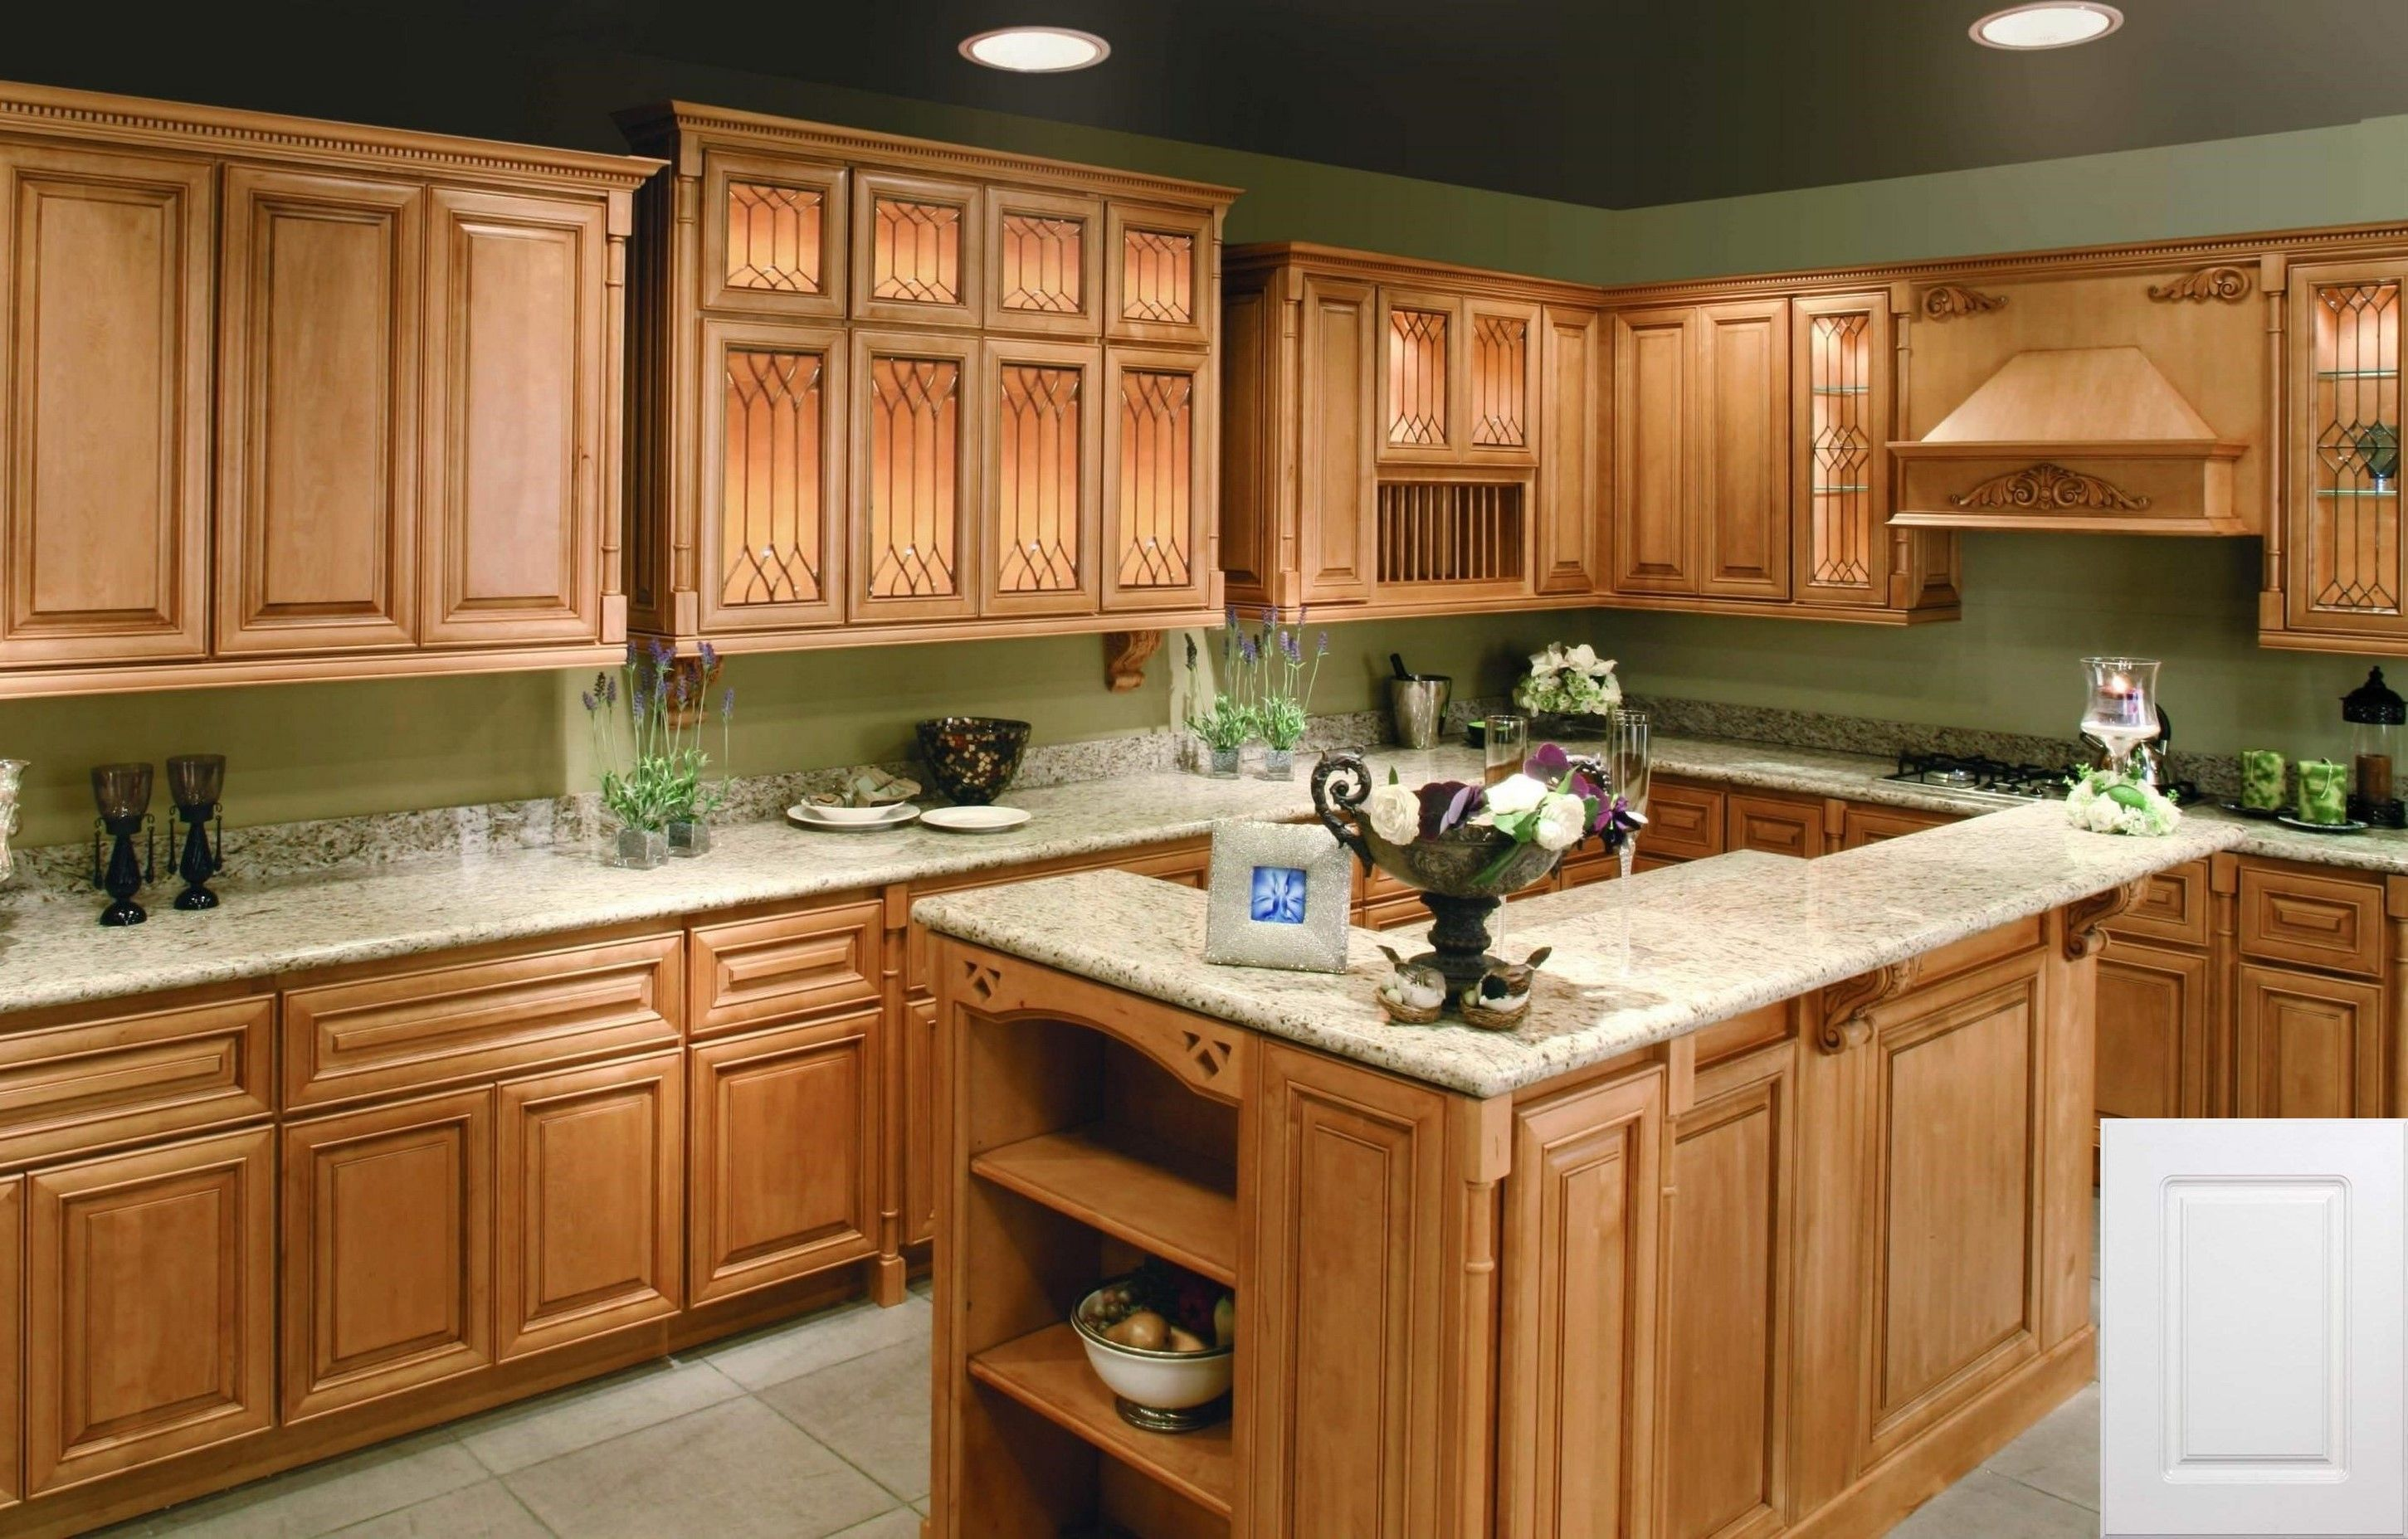 Your Next Diy Project Kitchen Cabinet Organizers And Diy Kitchen Cabinets Lowes In 2020 Honey Oak Cabinets Kitchen Cabinet Design Granite Countertops Kitchen